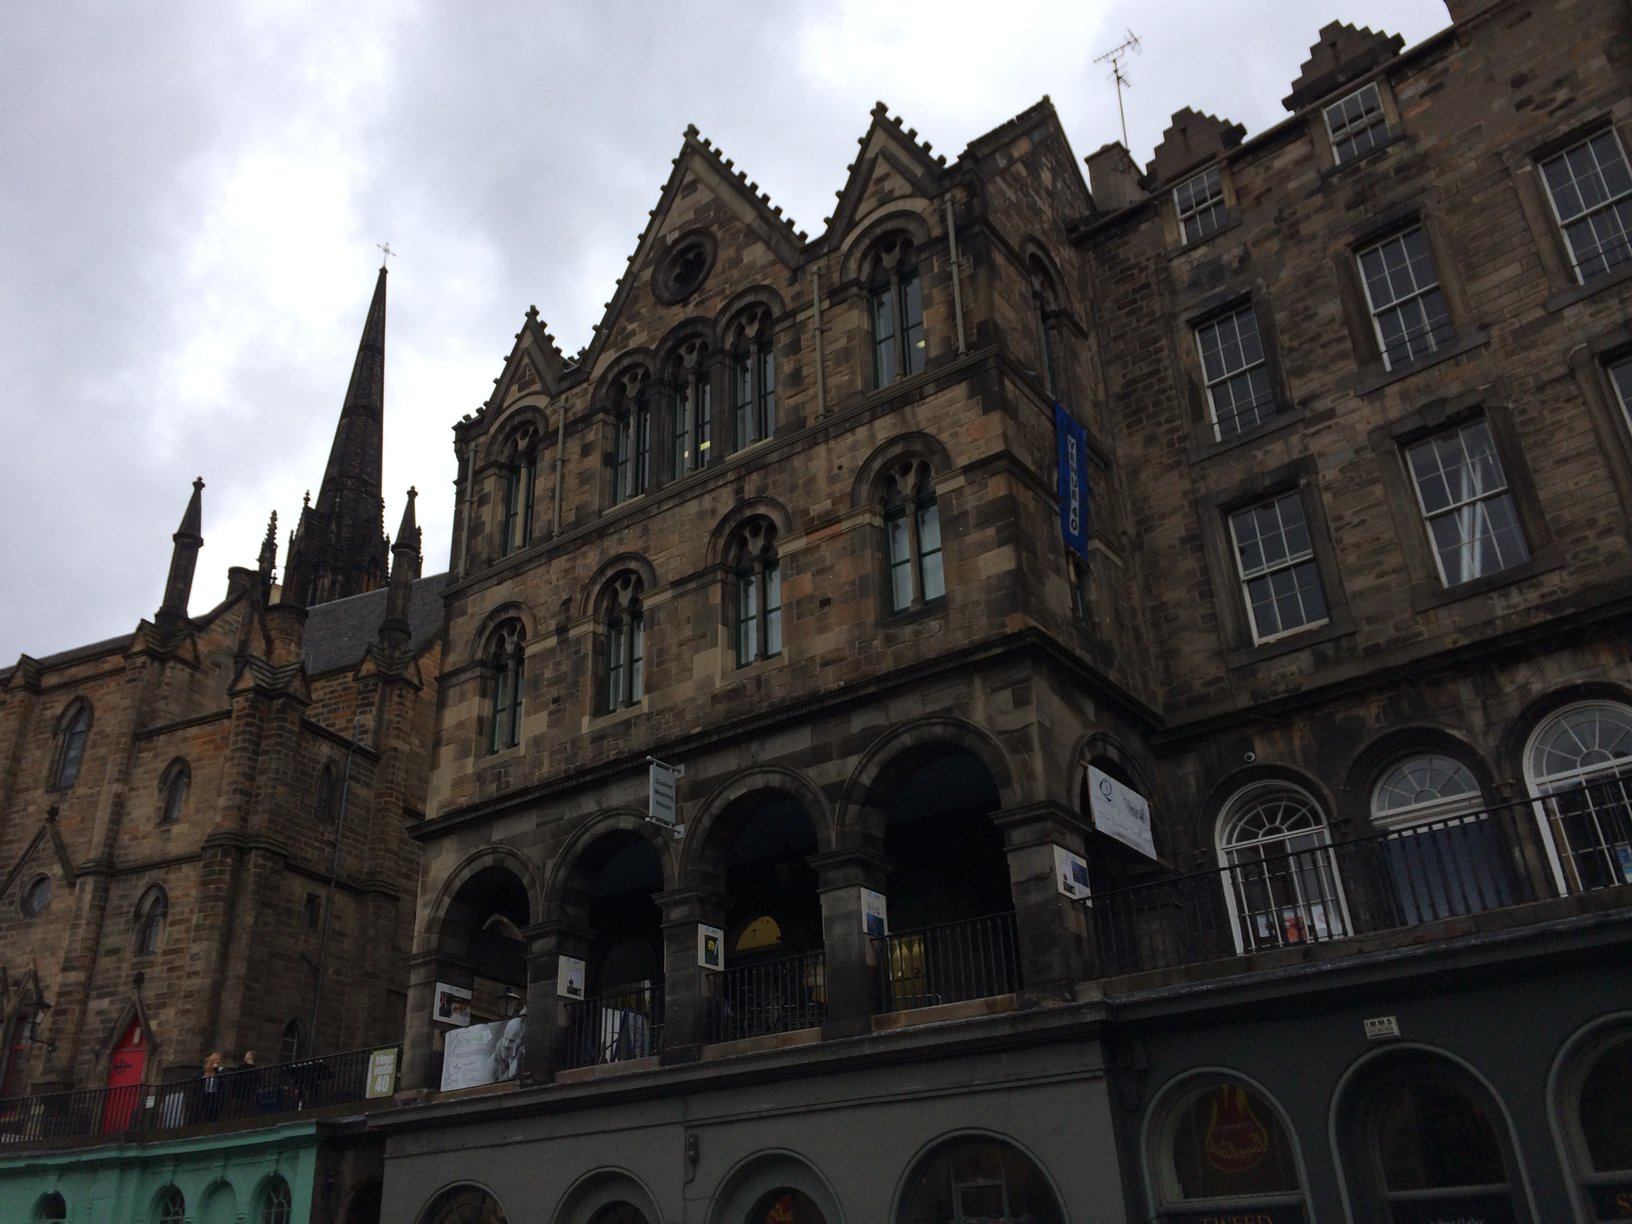 The gothic surroundings fit the mood of the Fringe at this point perfectly.